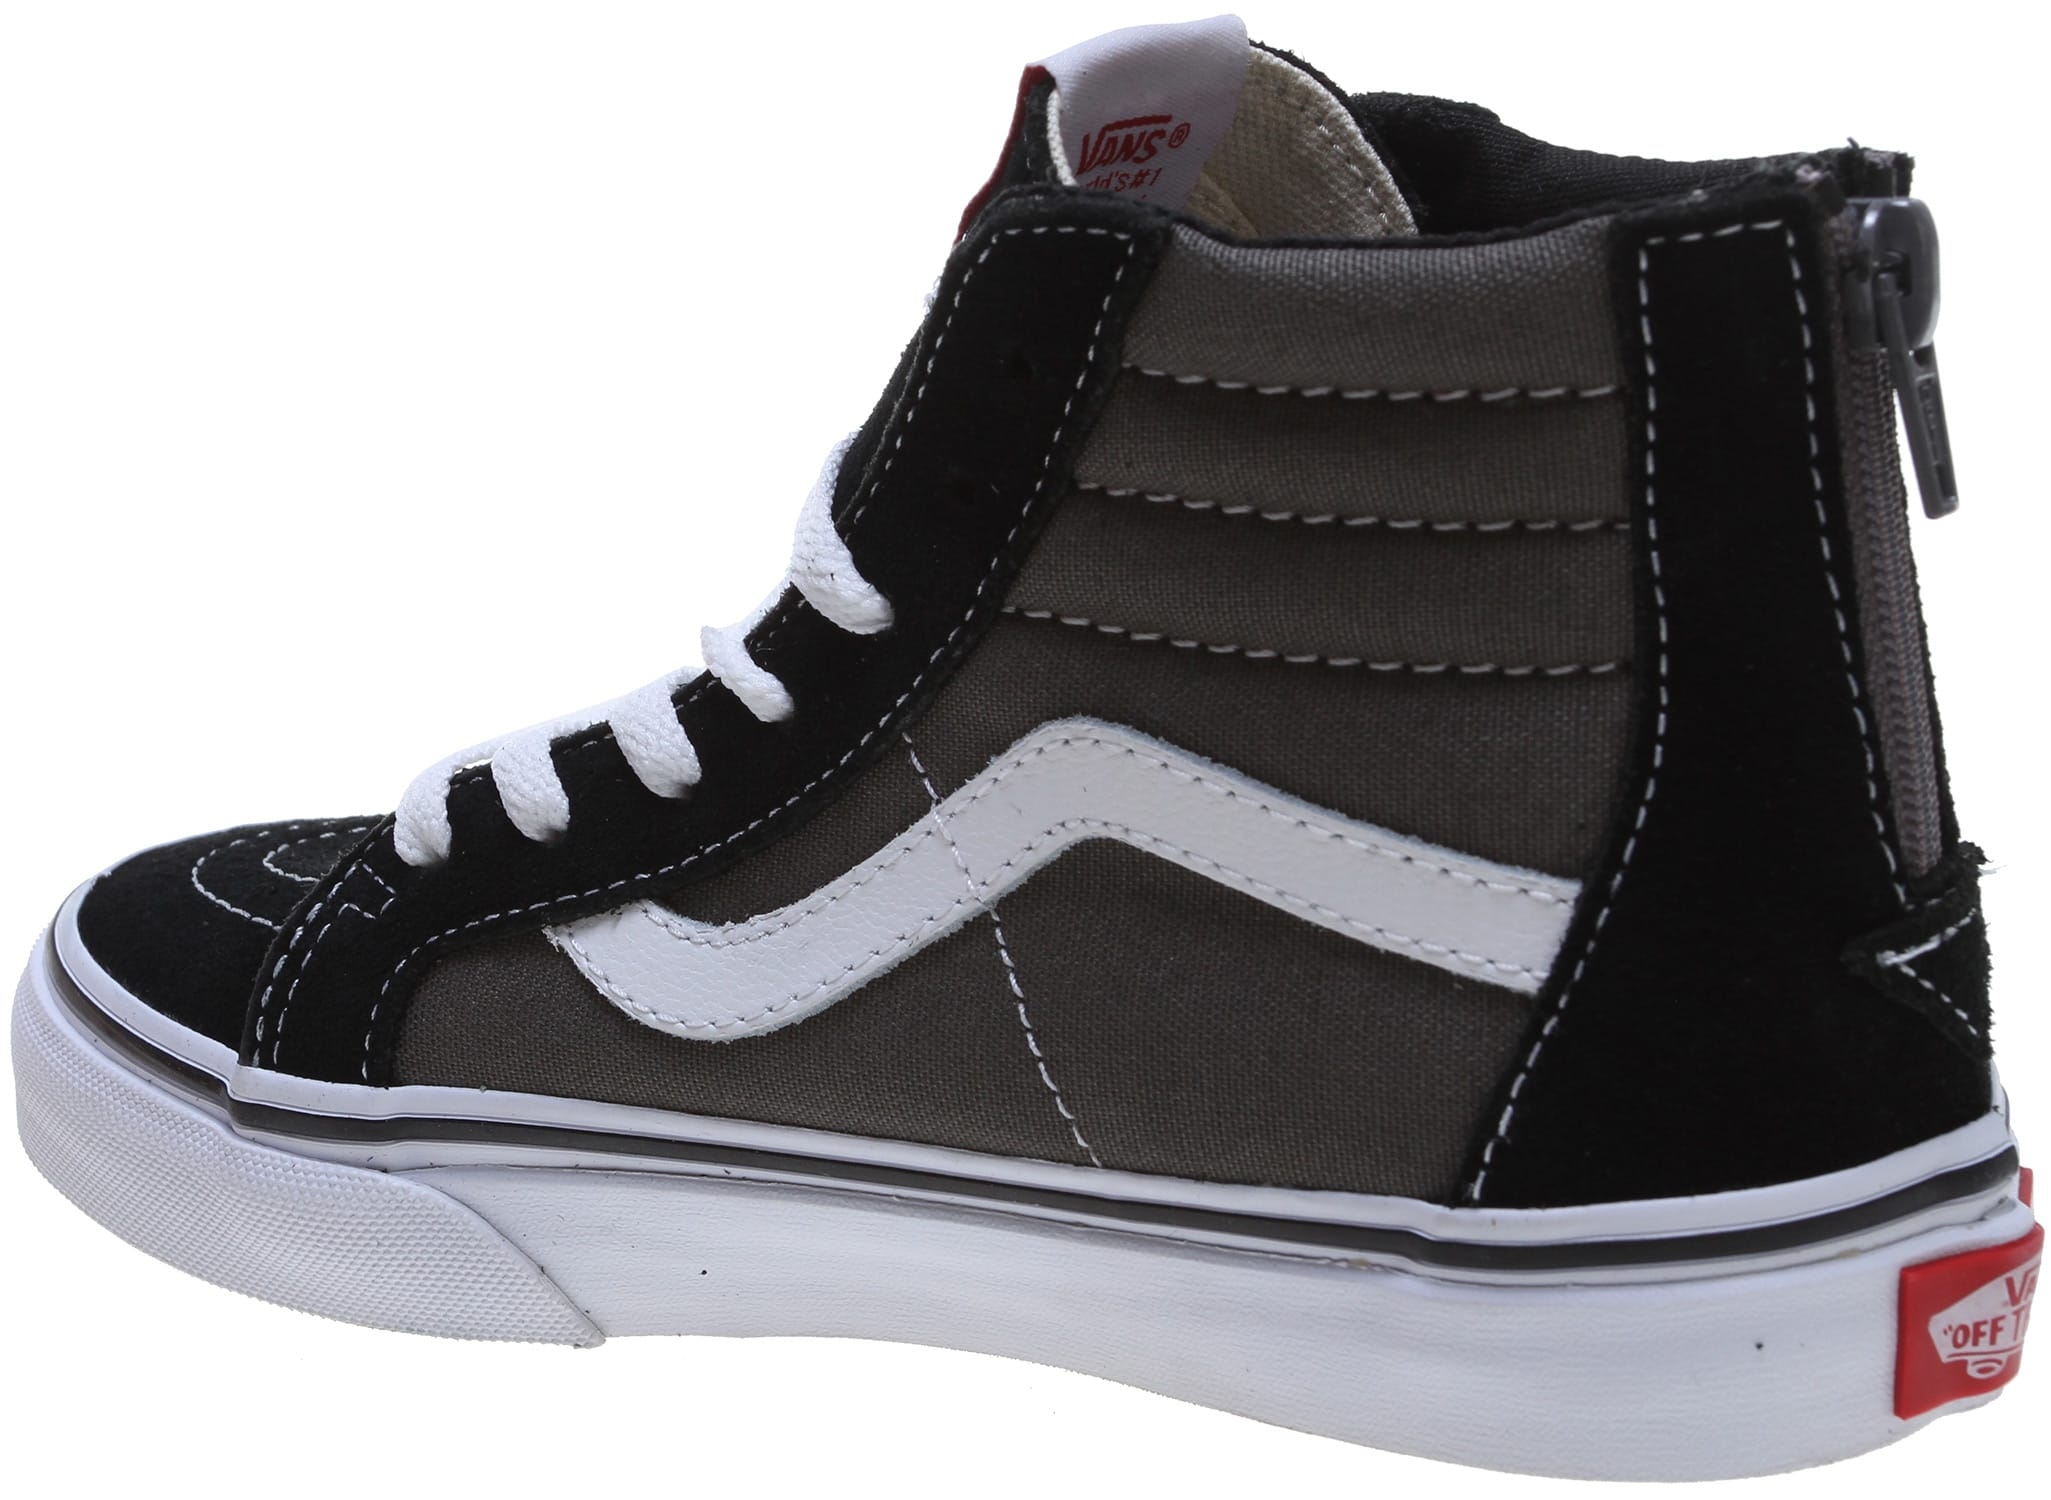 cfd4f63fd65 Vans Sk8-Hi Zip Skate Shoes - thumbnail 3